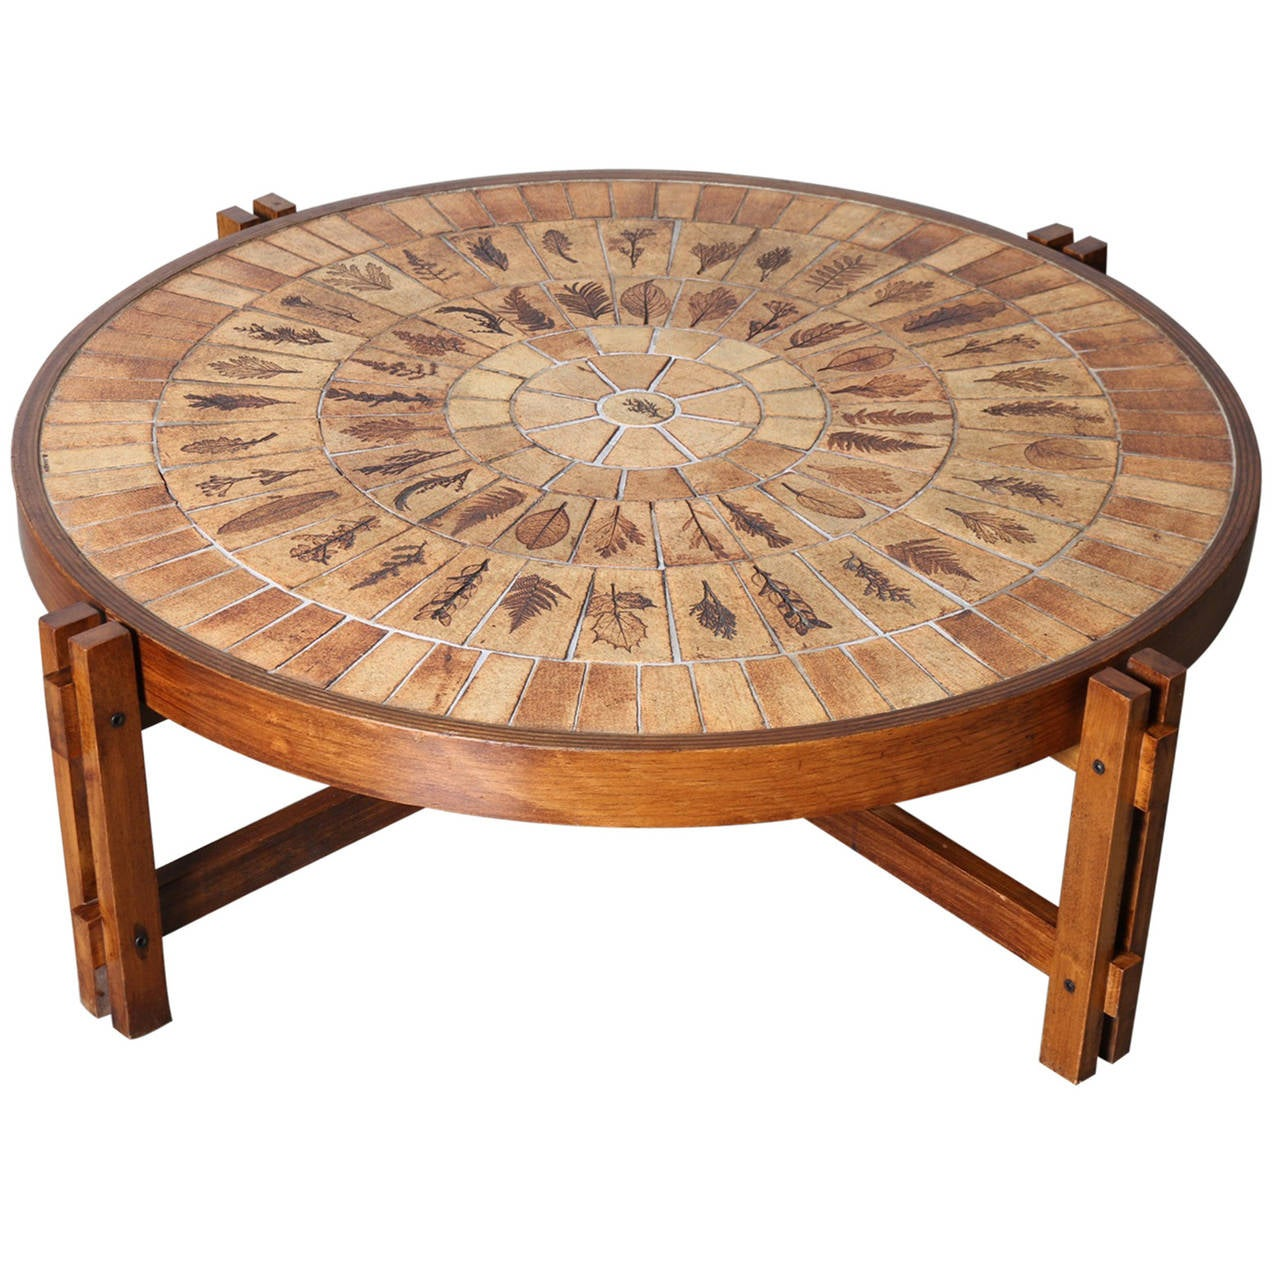 Roger Capron Round Coffee Table Pressed Leaves In Ceramic Tile Top At 1stdibs